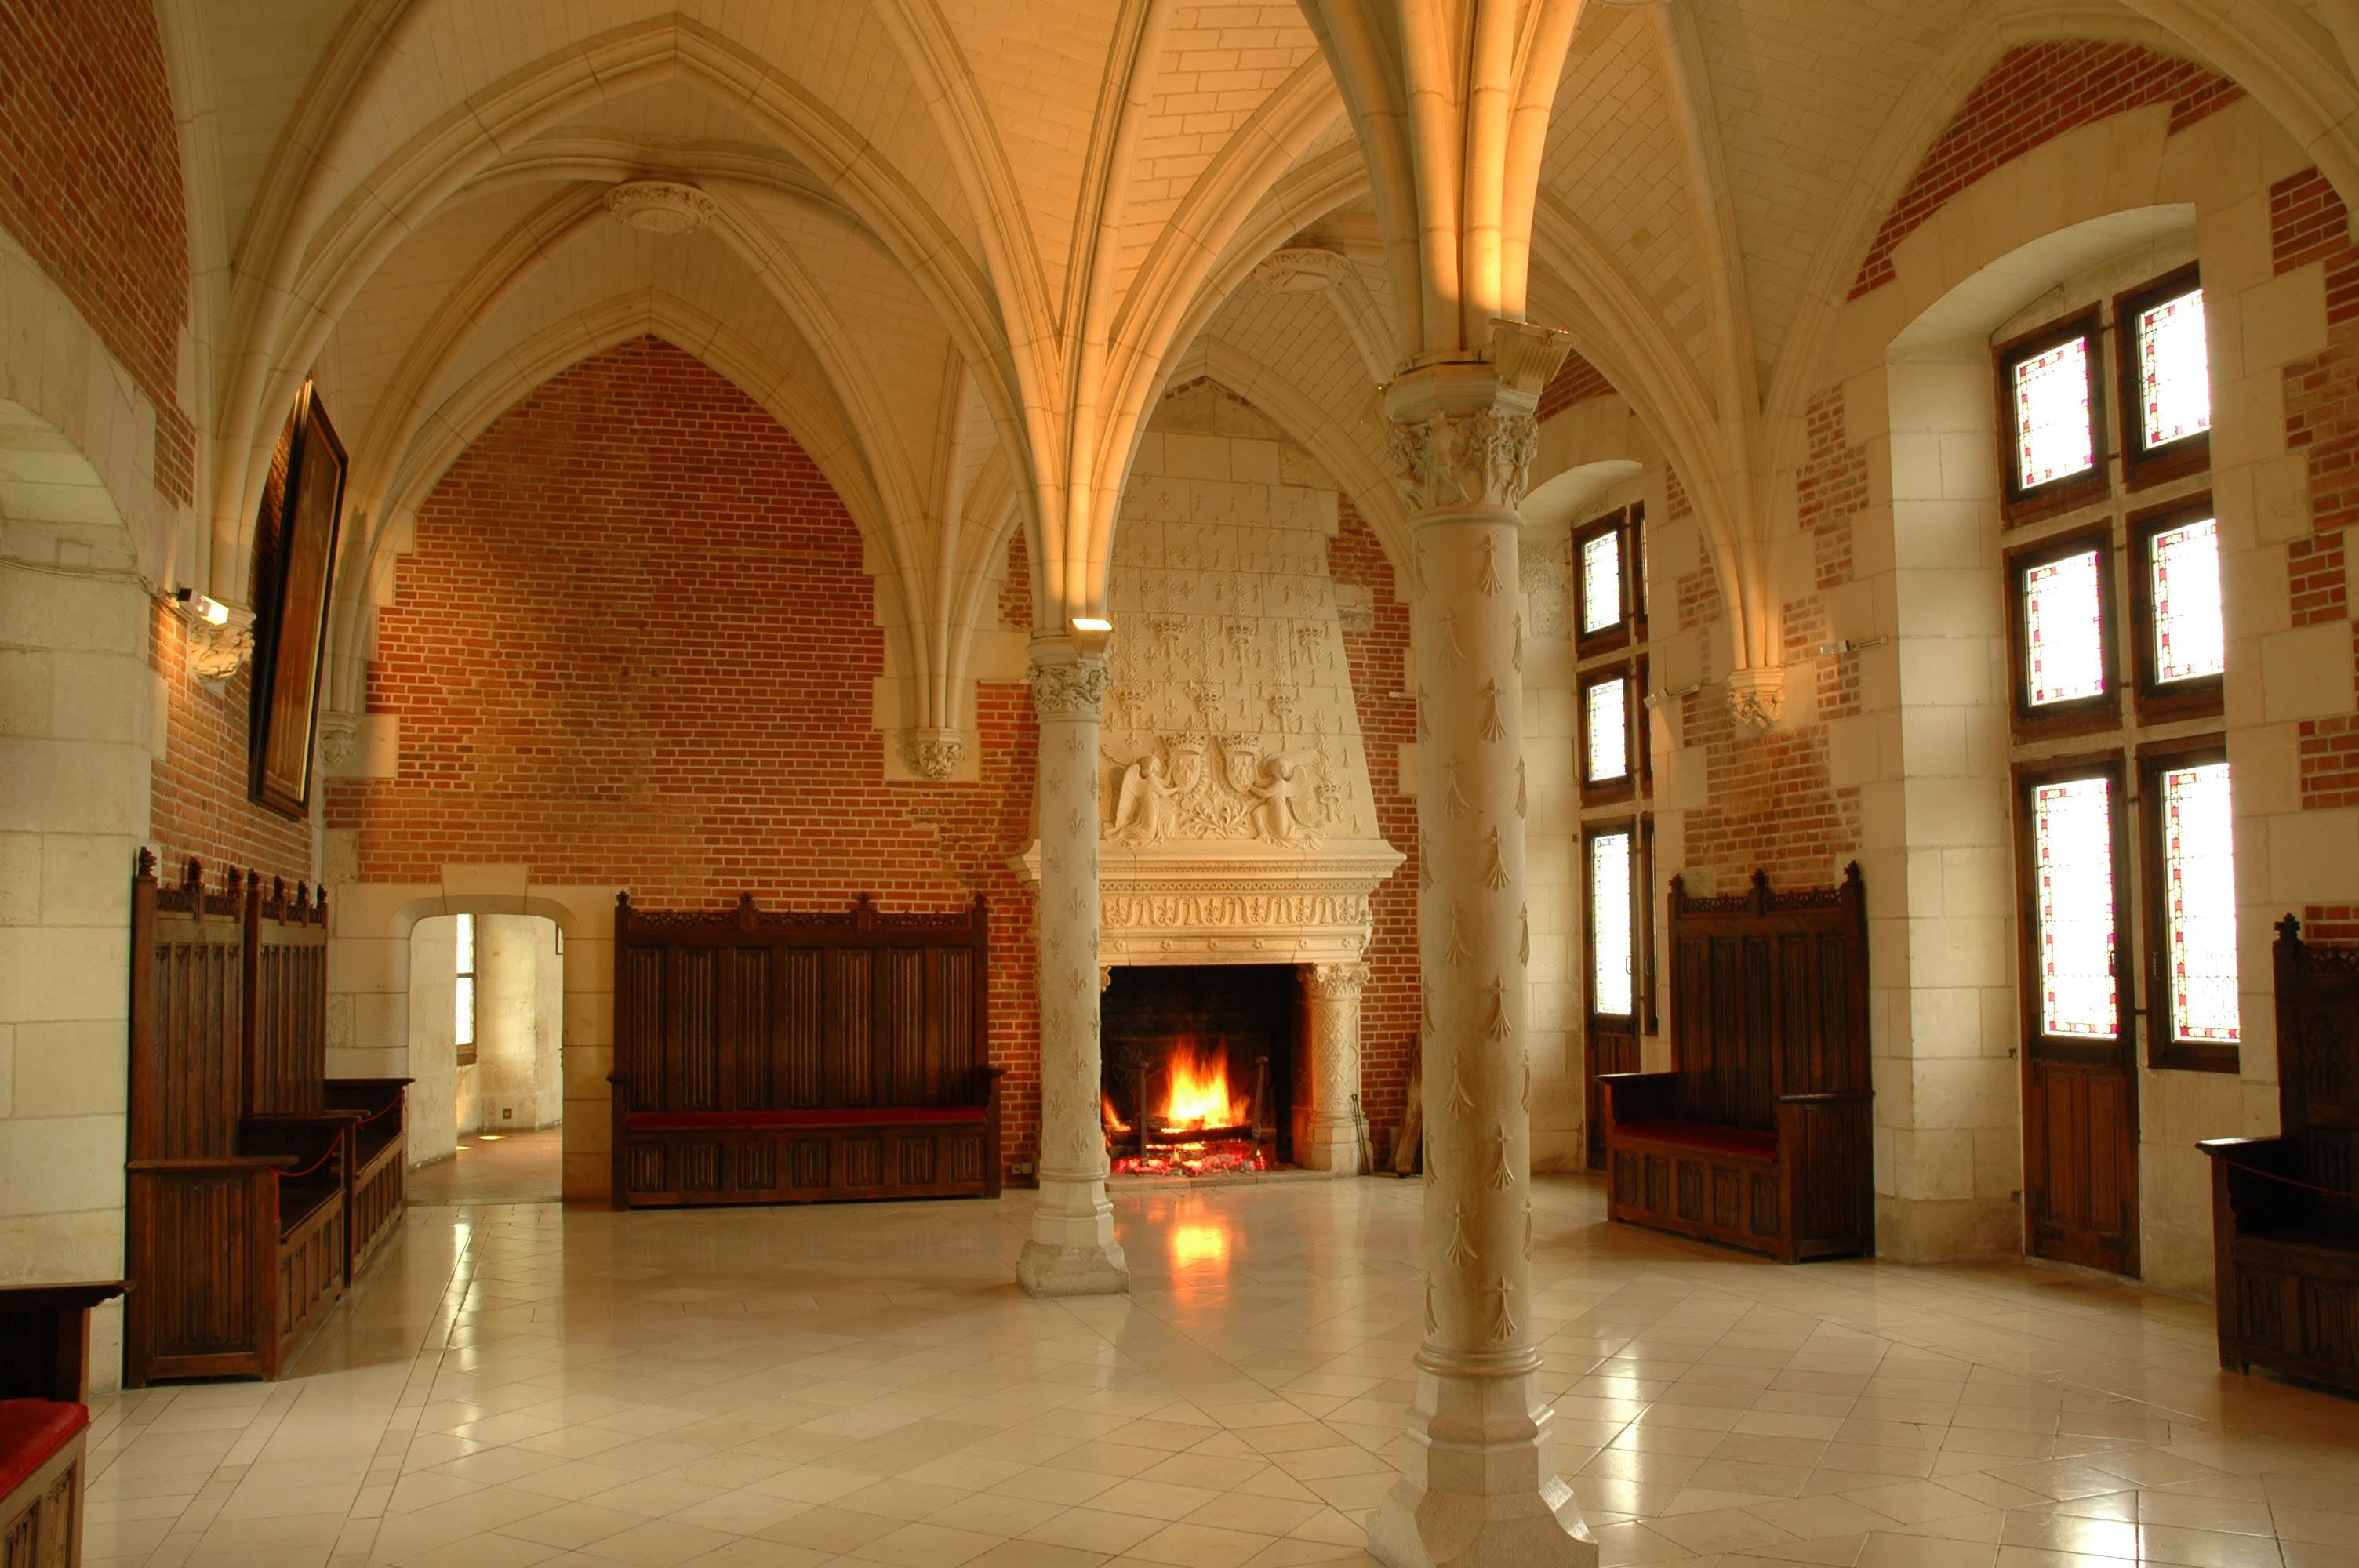 ROYAL BREAK IN THE ROYAL VALLEY - 2 DAYS/1 NIGHT from 205 €/person